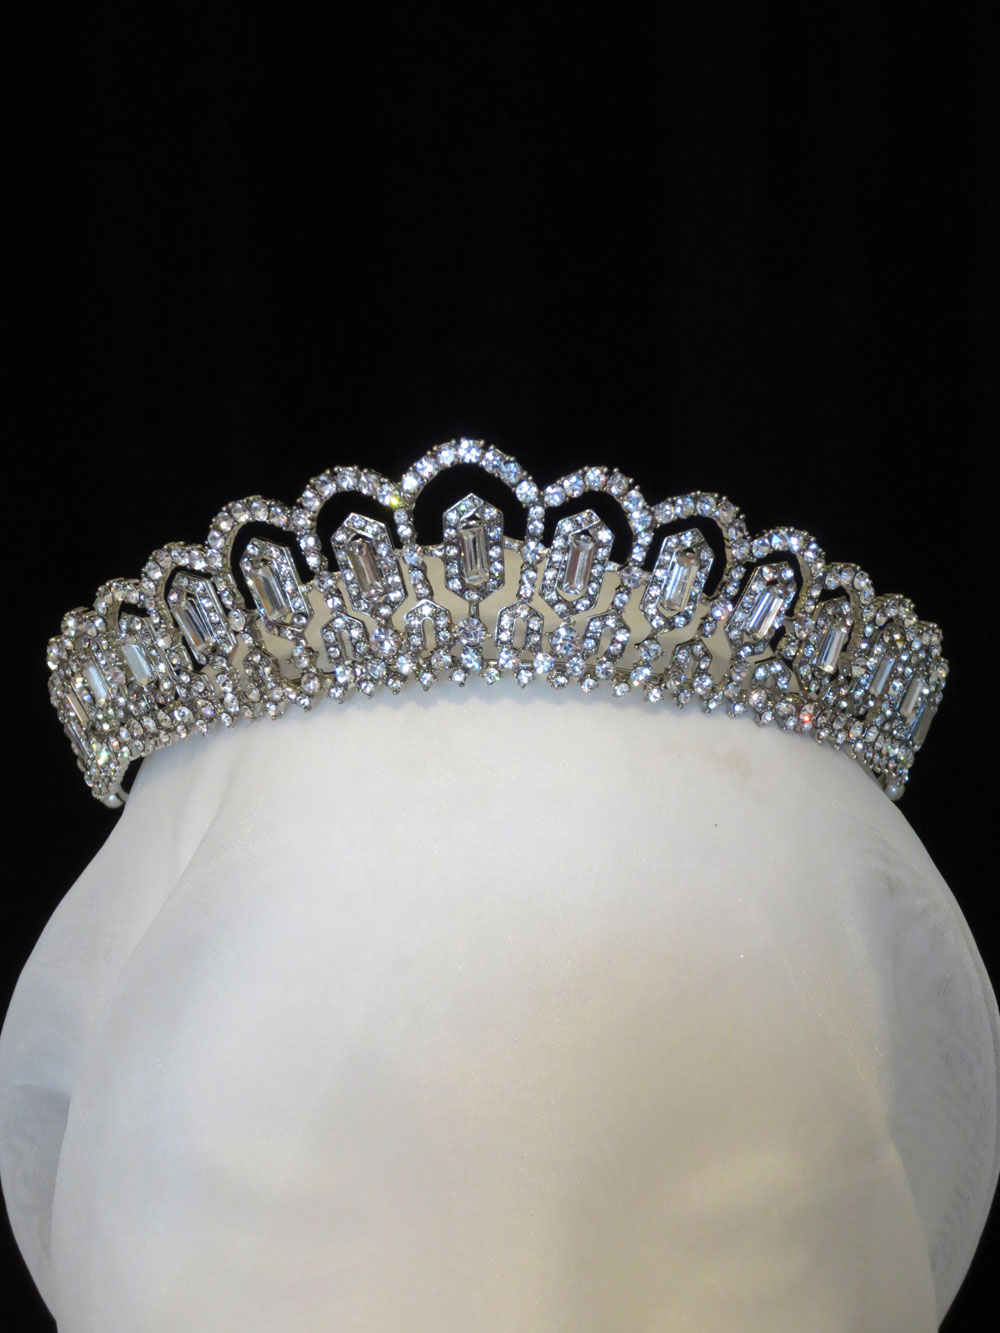 John-Zimmerman-Couture-Headpieces-and-Tiaras-Model-Mary-Gallery-Image-1